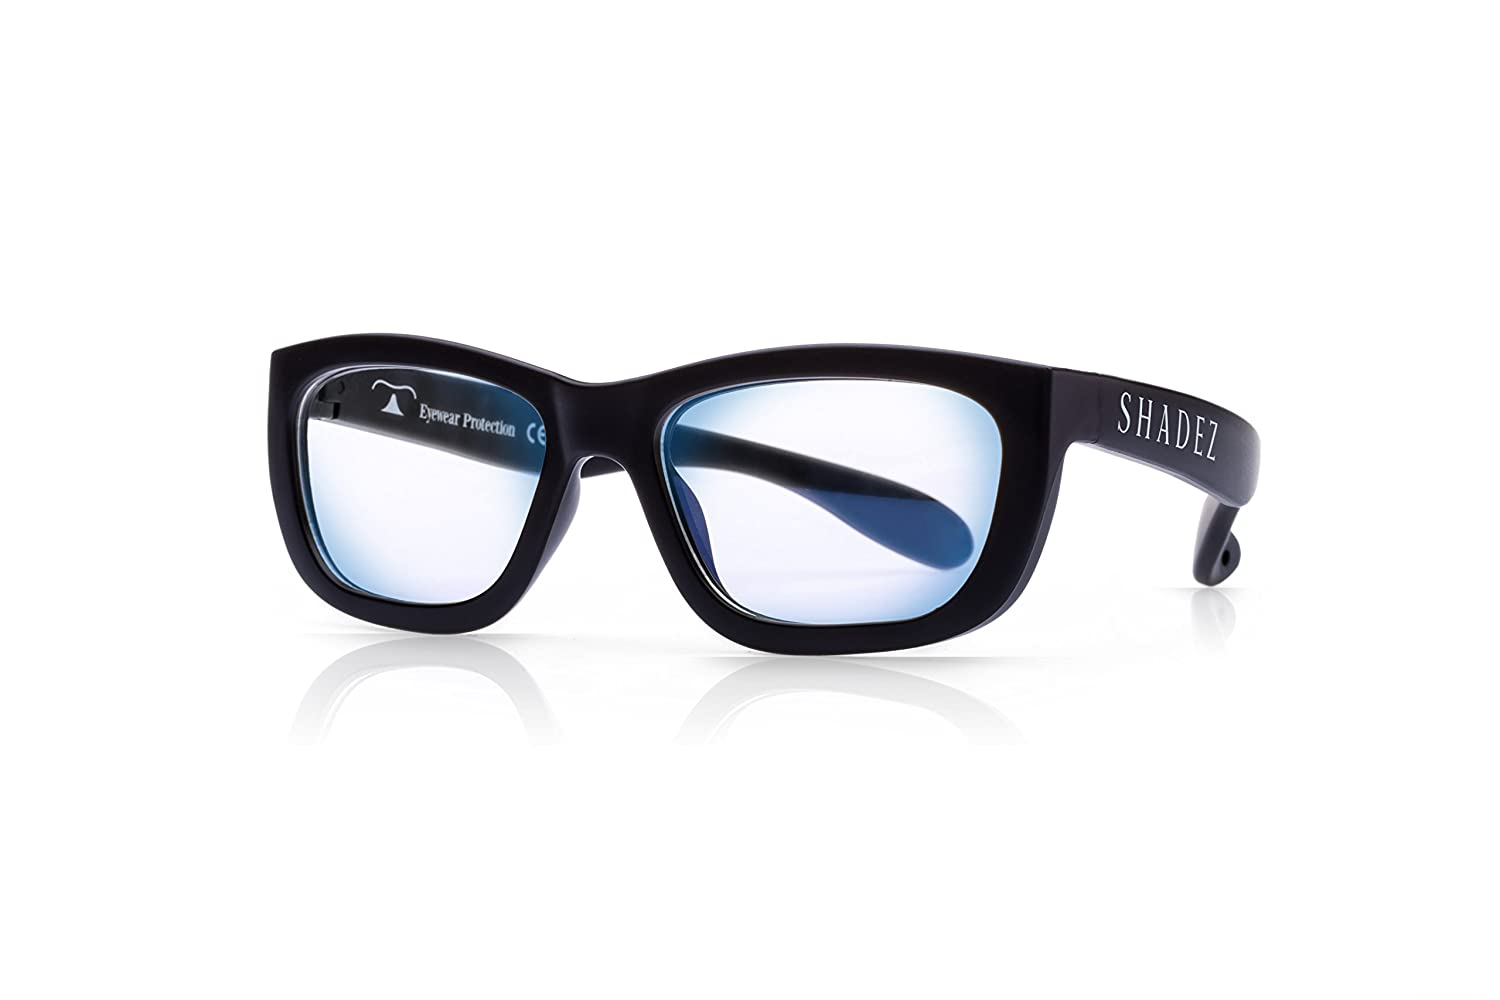 ERROR:#N/A Shadez blue light filter glasses premium swiss design gafas deportivas